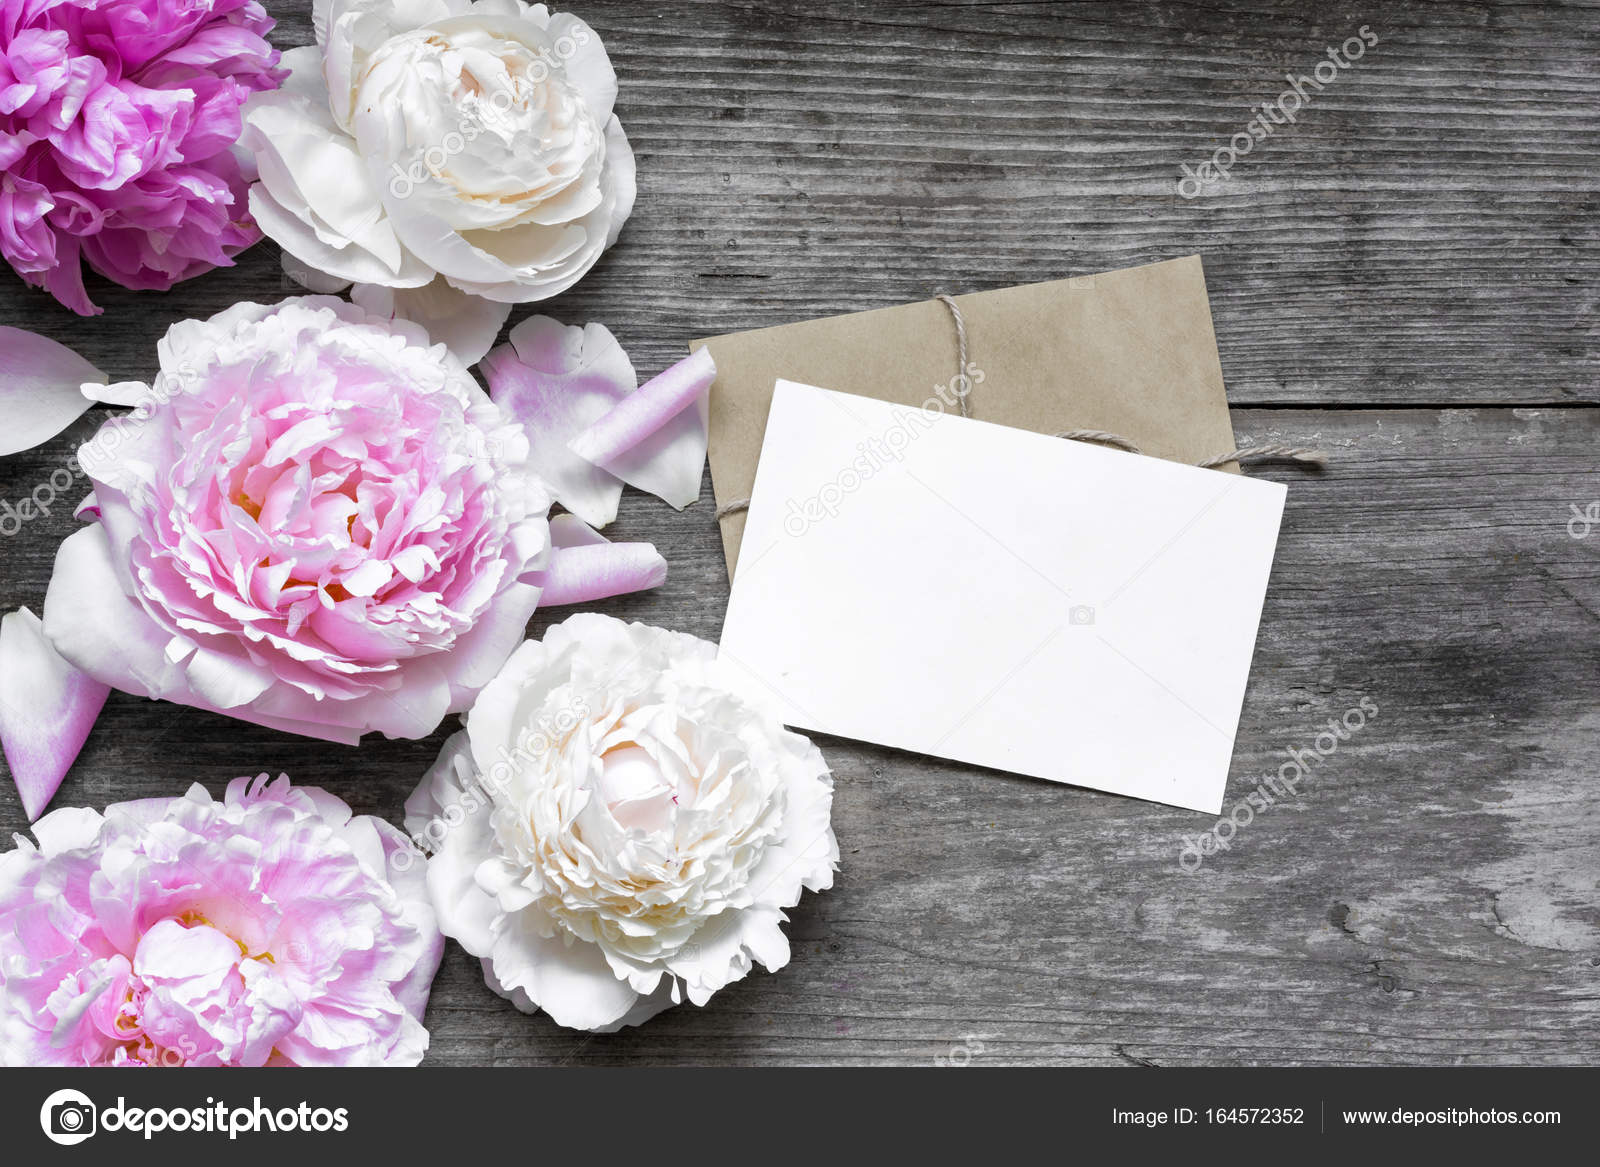 blank greeting card or wedding invitation and envelope with tender